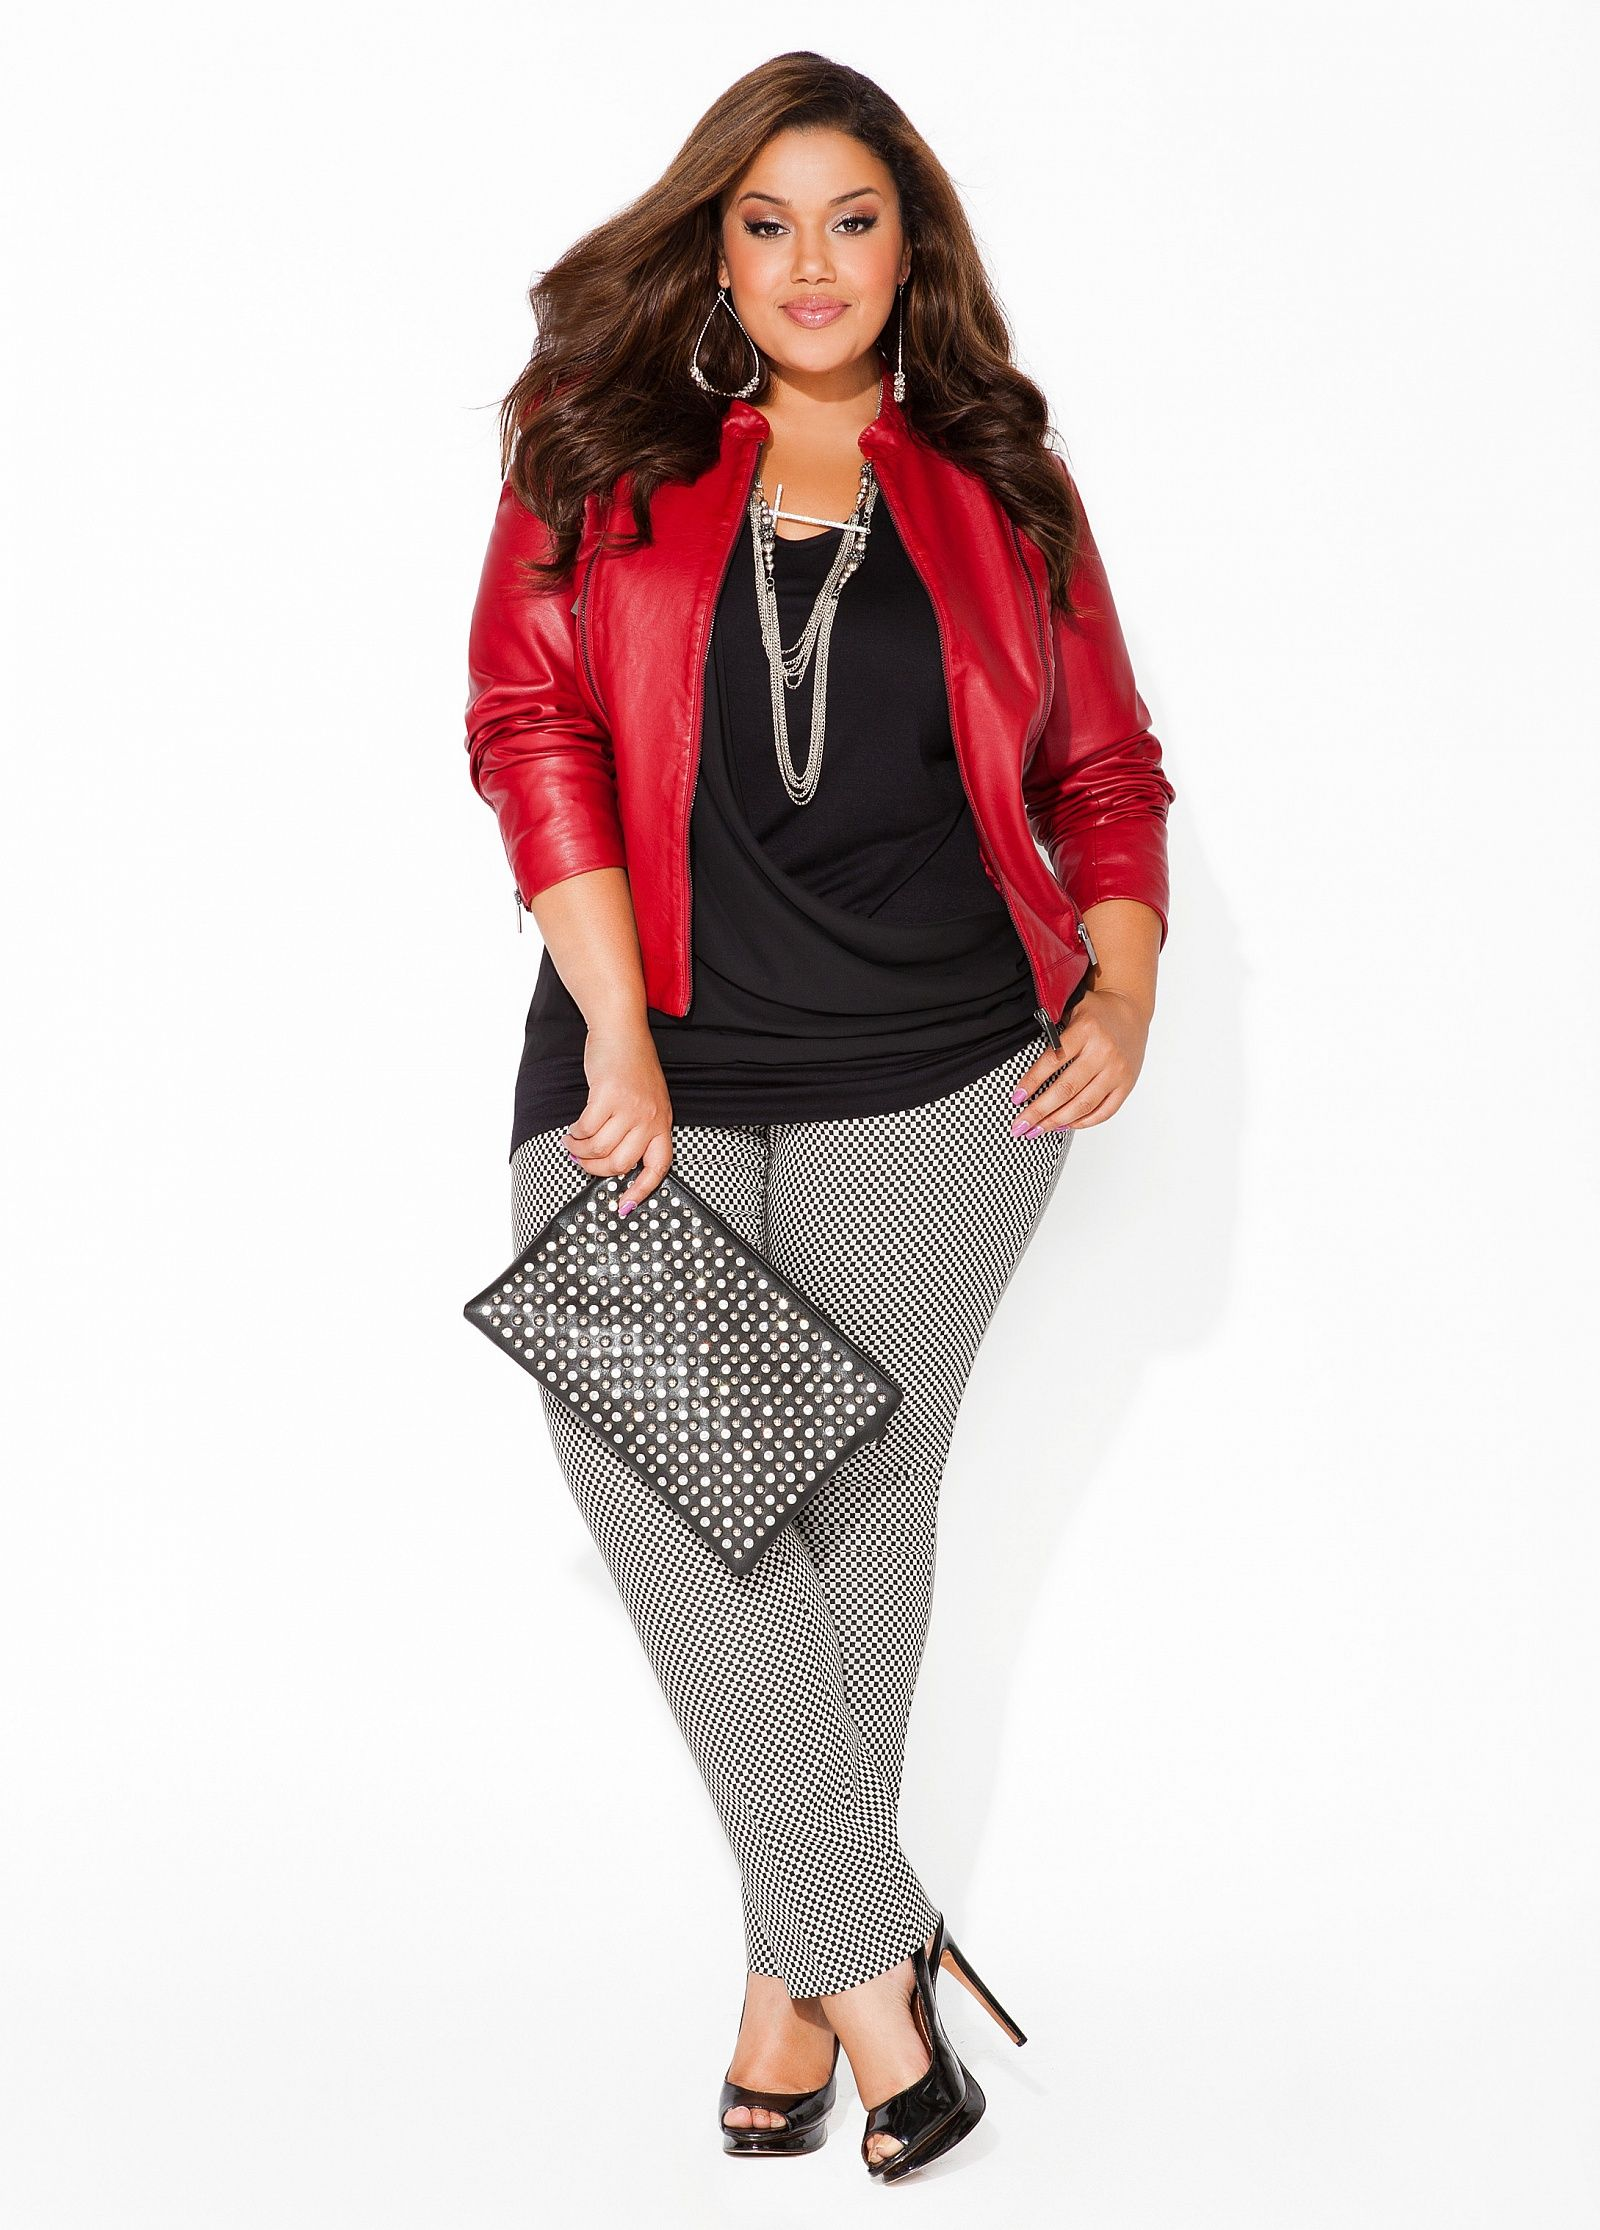 96211139f1b Another work and play outfit! Love those pants! Ashley Stewart  This model  is gorgeous!  curvyissexy